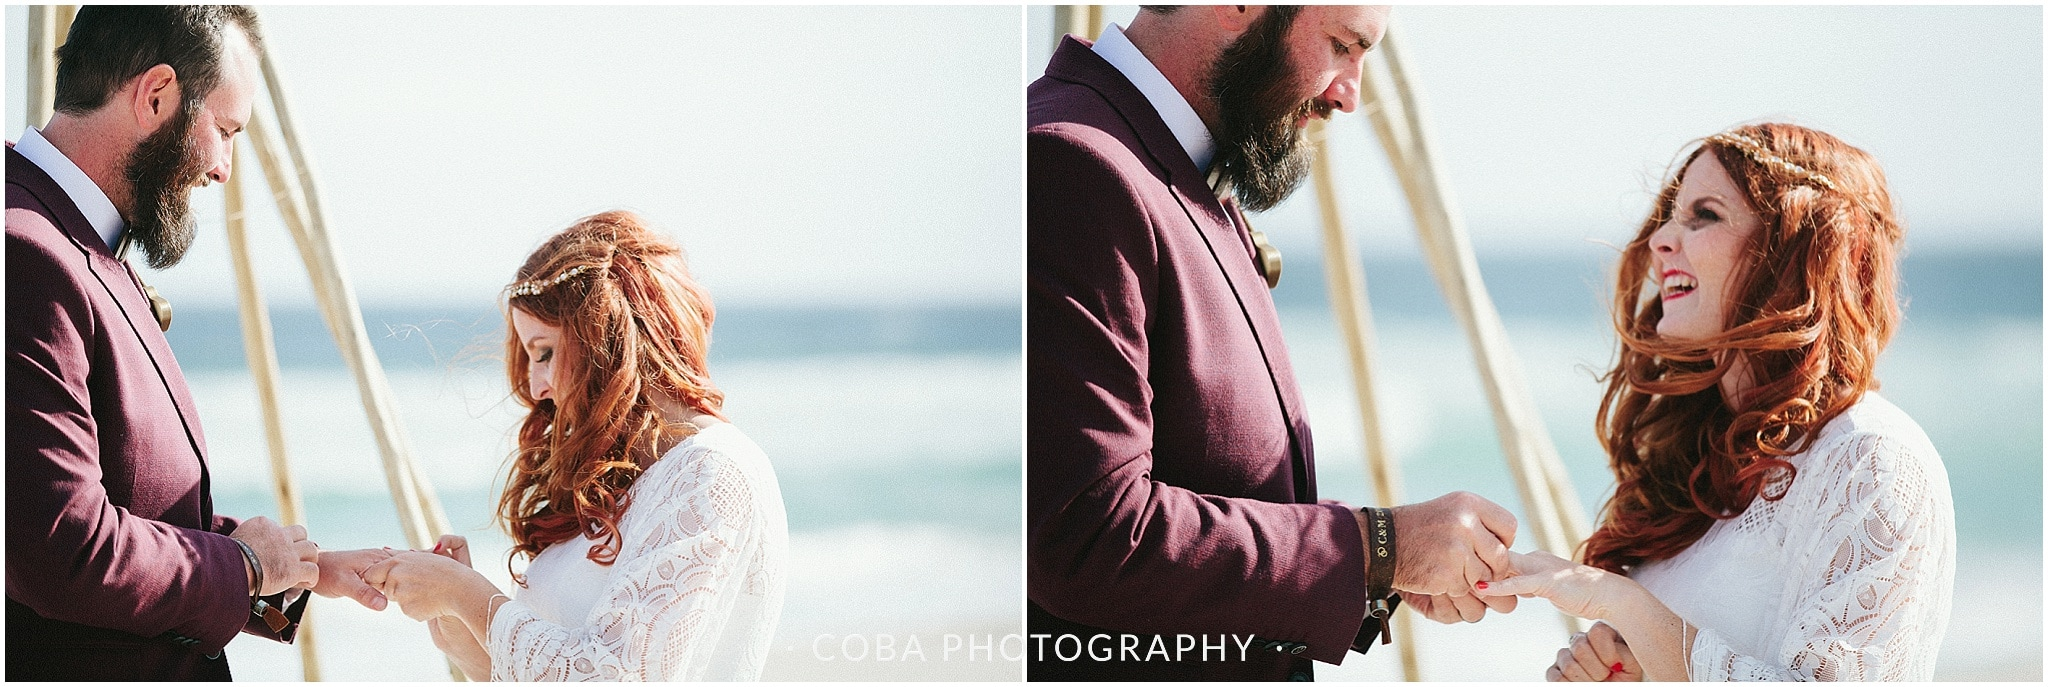 Conrad & Mareli - Boho beach wedding - ceremony (16)